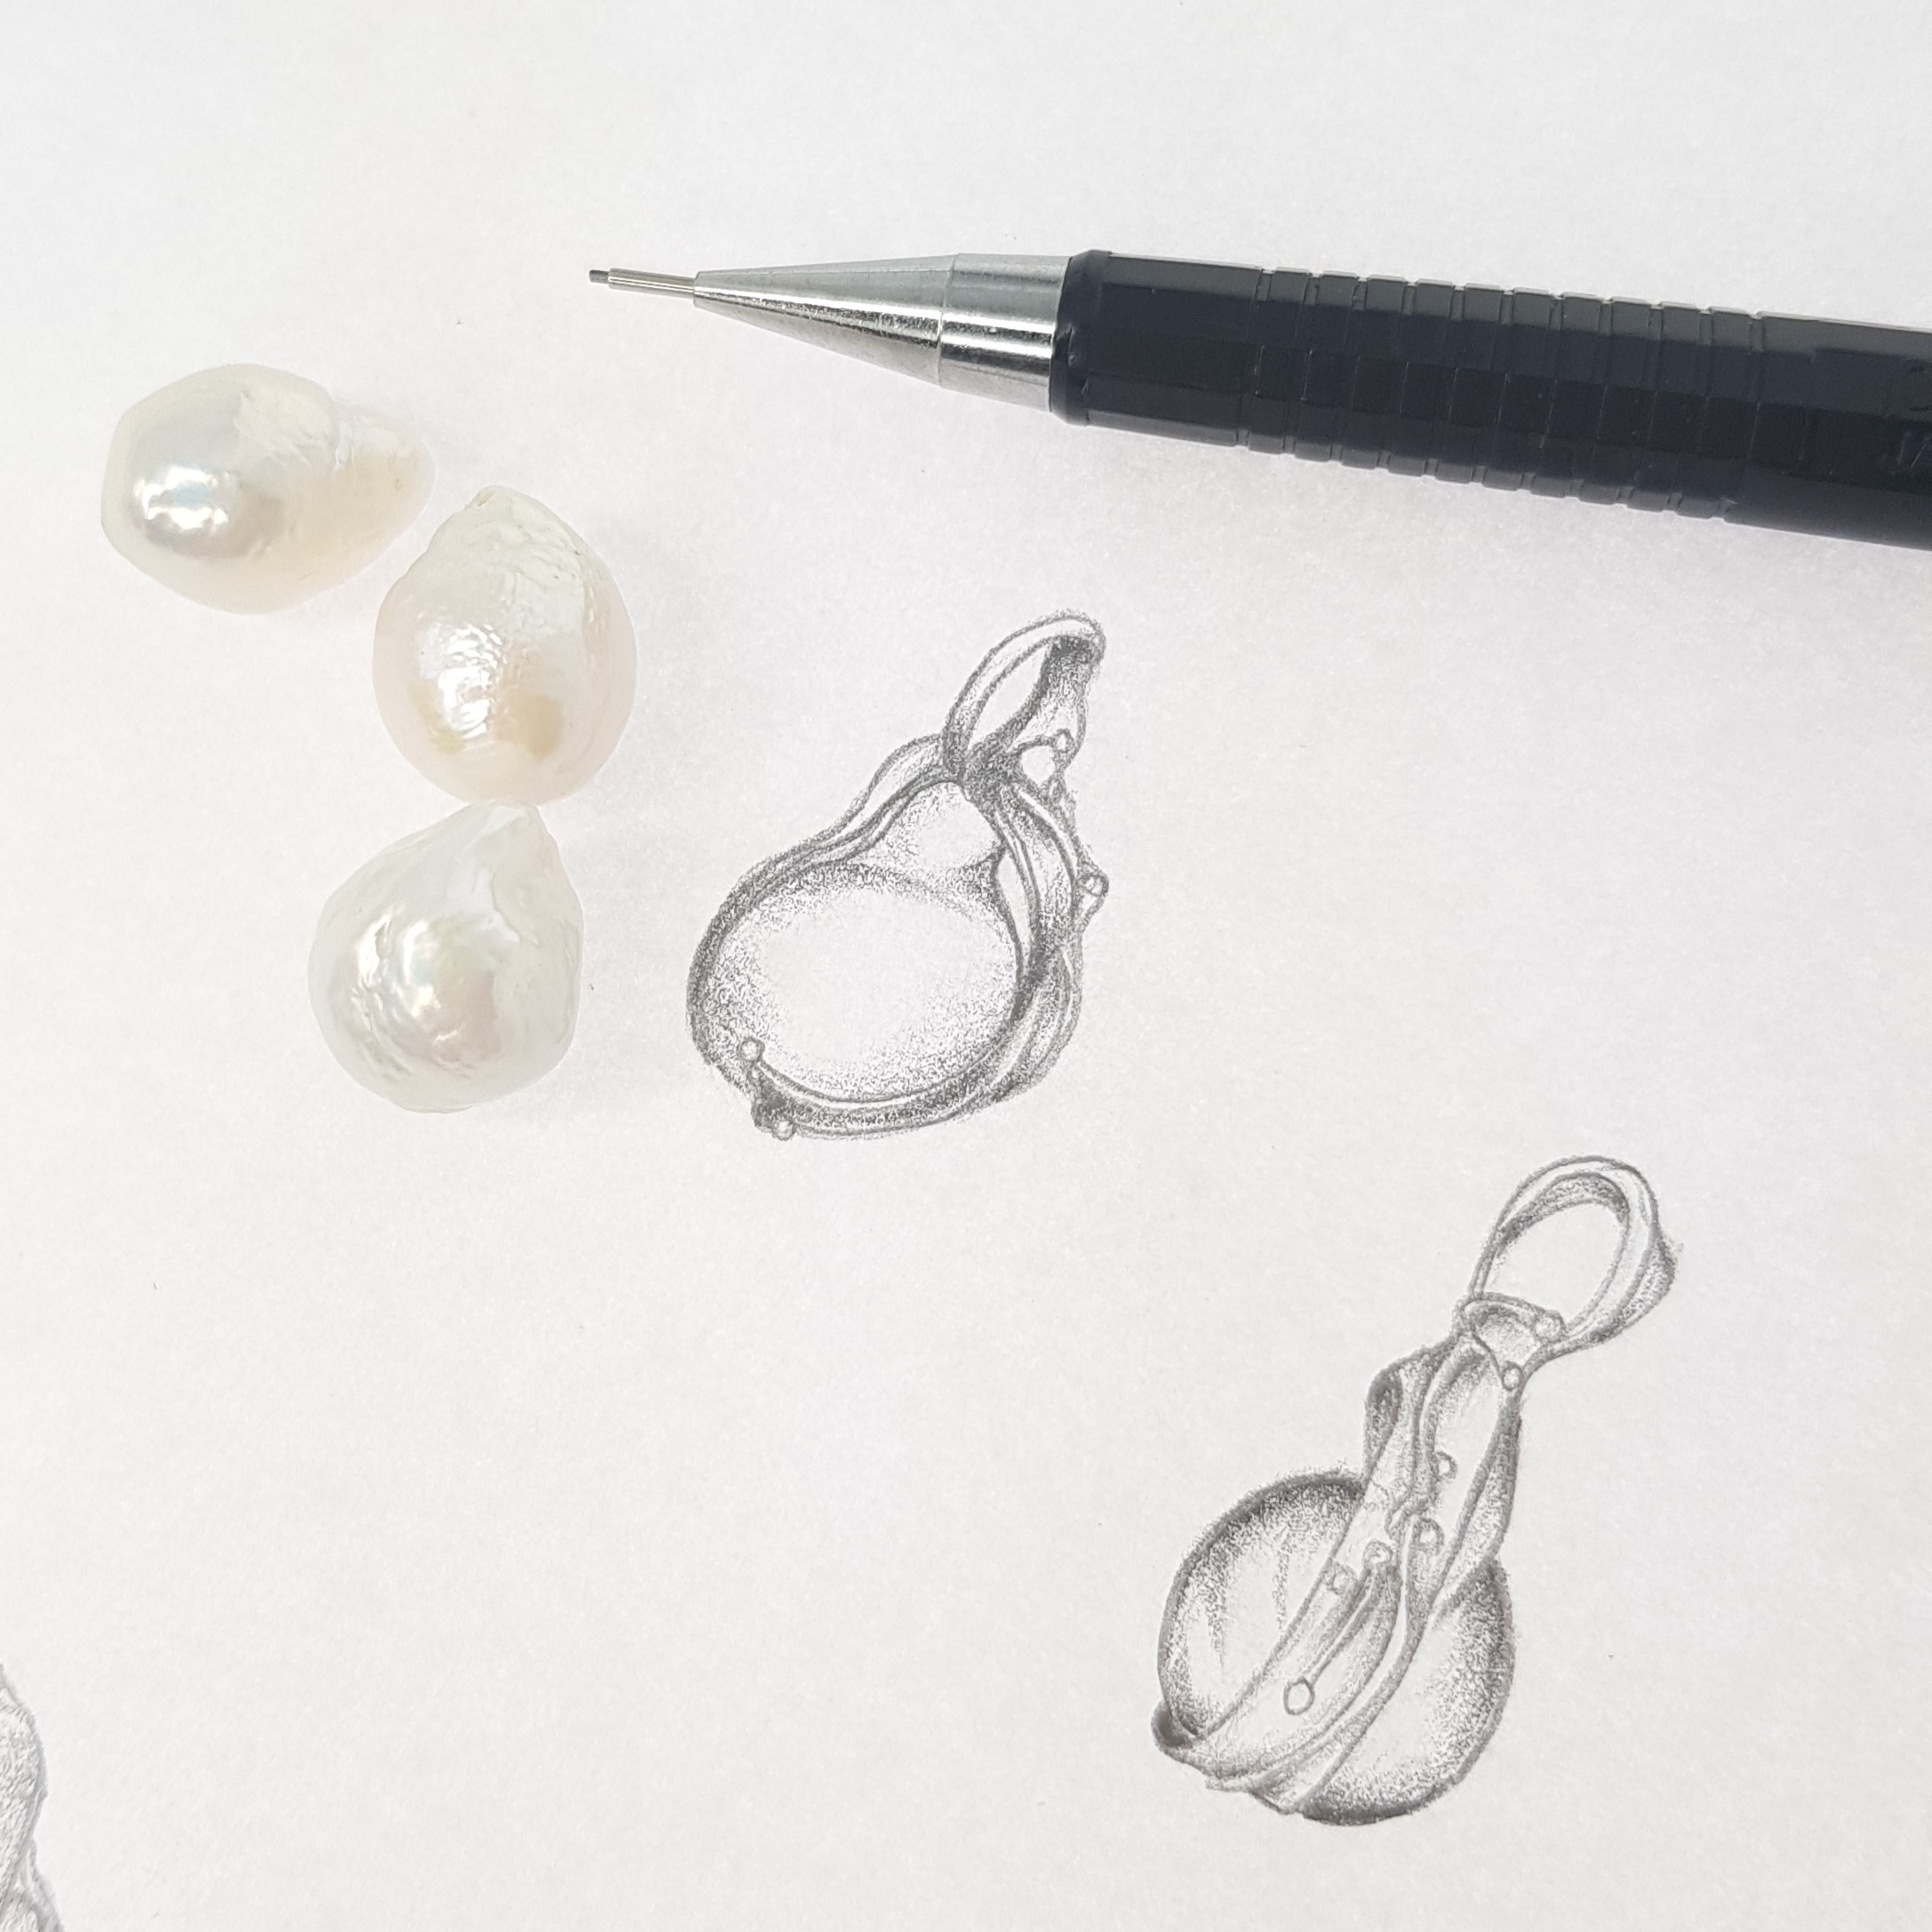 Pearls and drawing